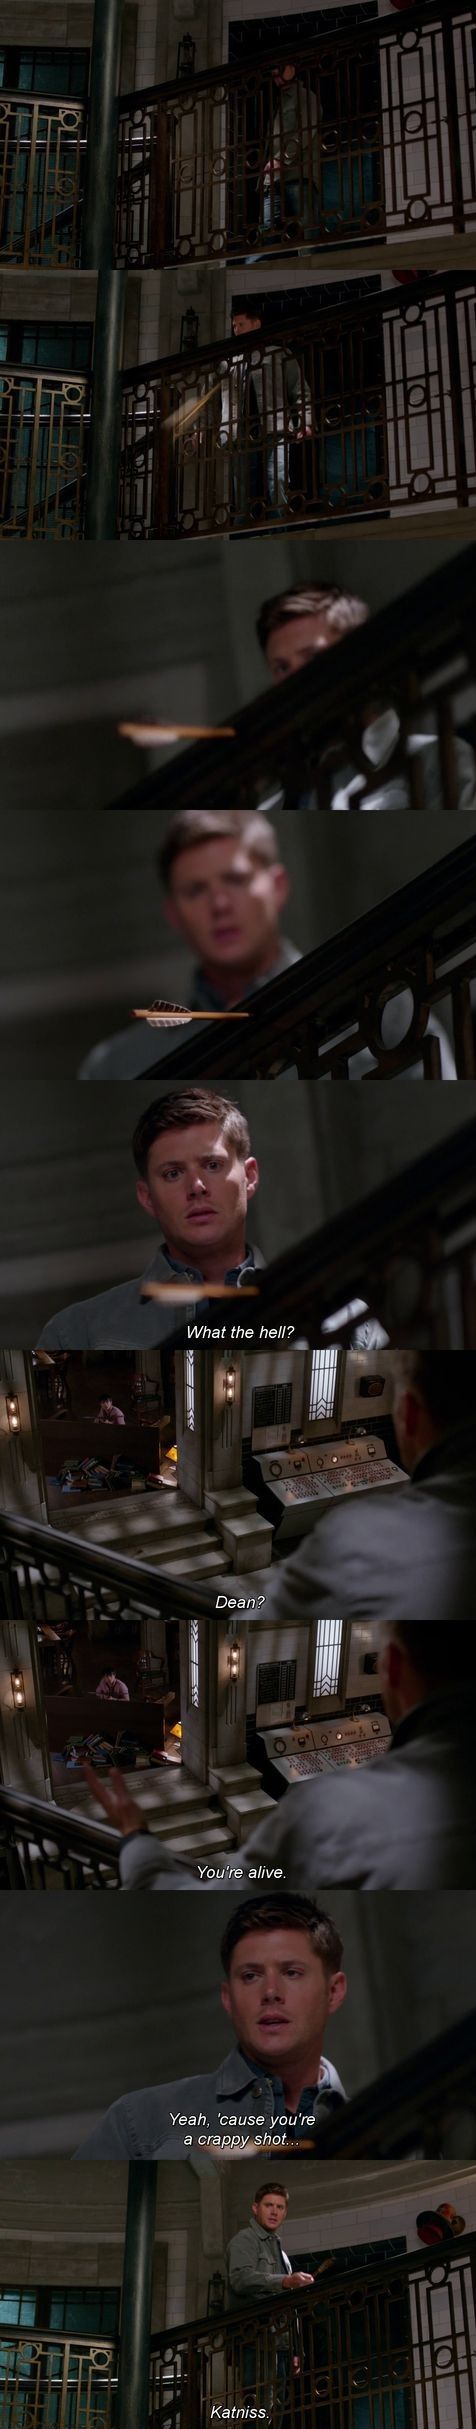 Funny Pictures, Funny Gifs, Funny Quotes, Funniest Jokes, Images, Photos, Pics | Tag Archives: Supernatural